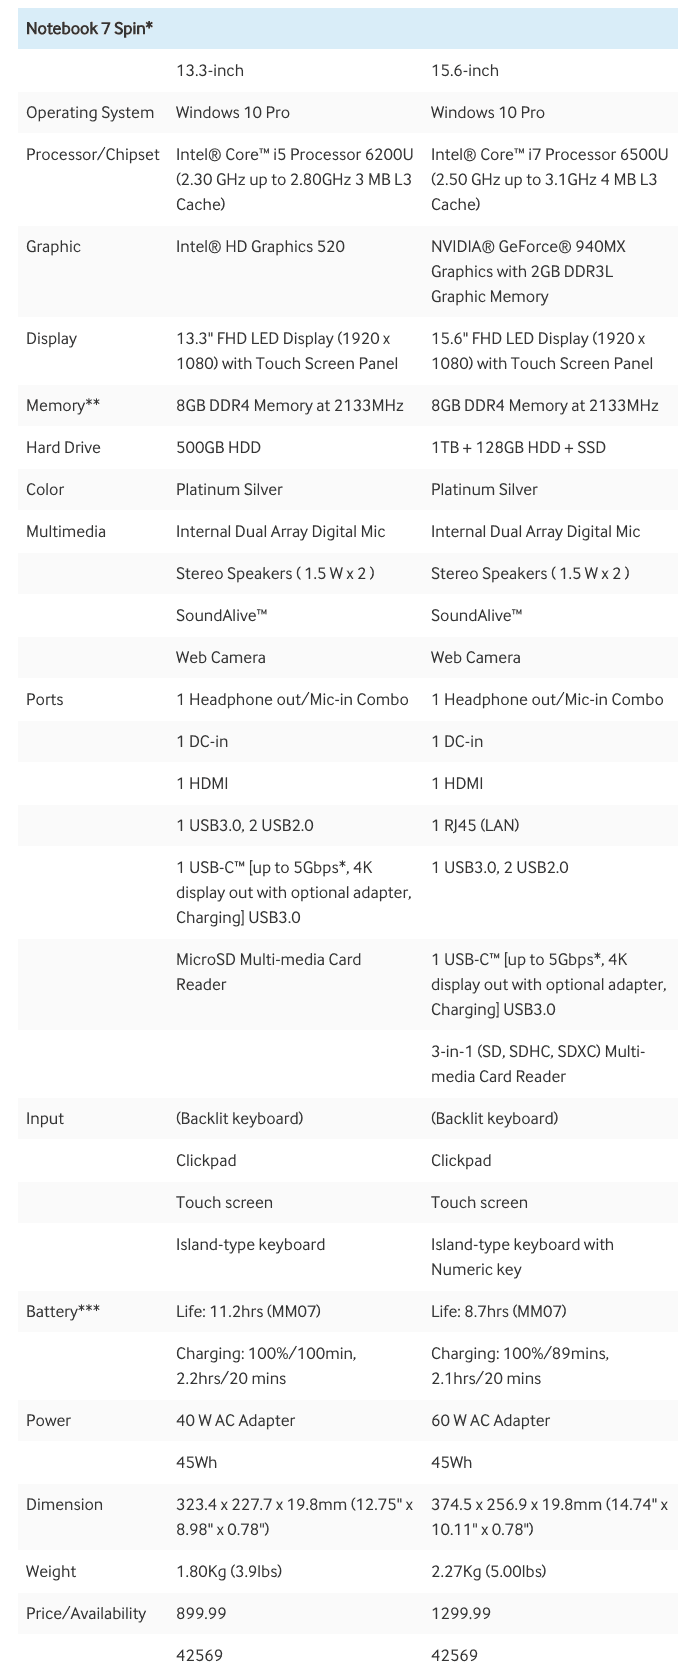 Detailed specs of the Samsung Notebook Spin 2-in-1 laptops.